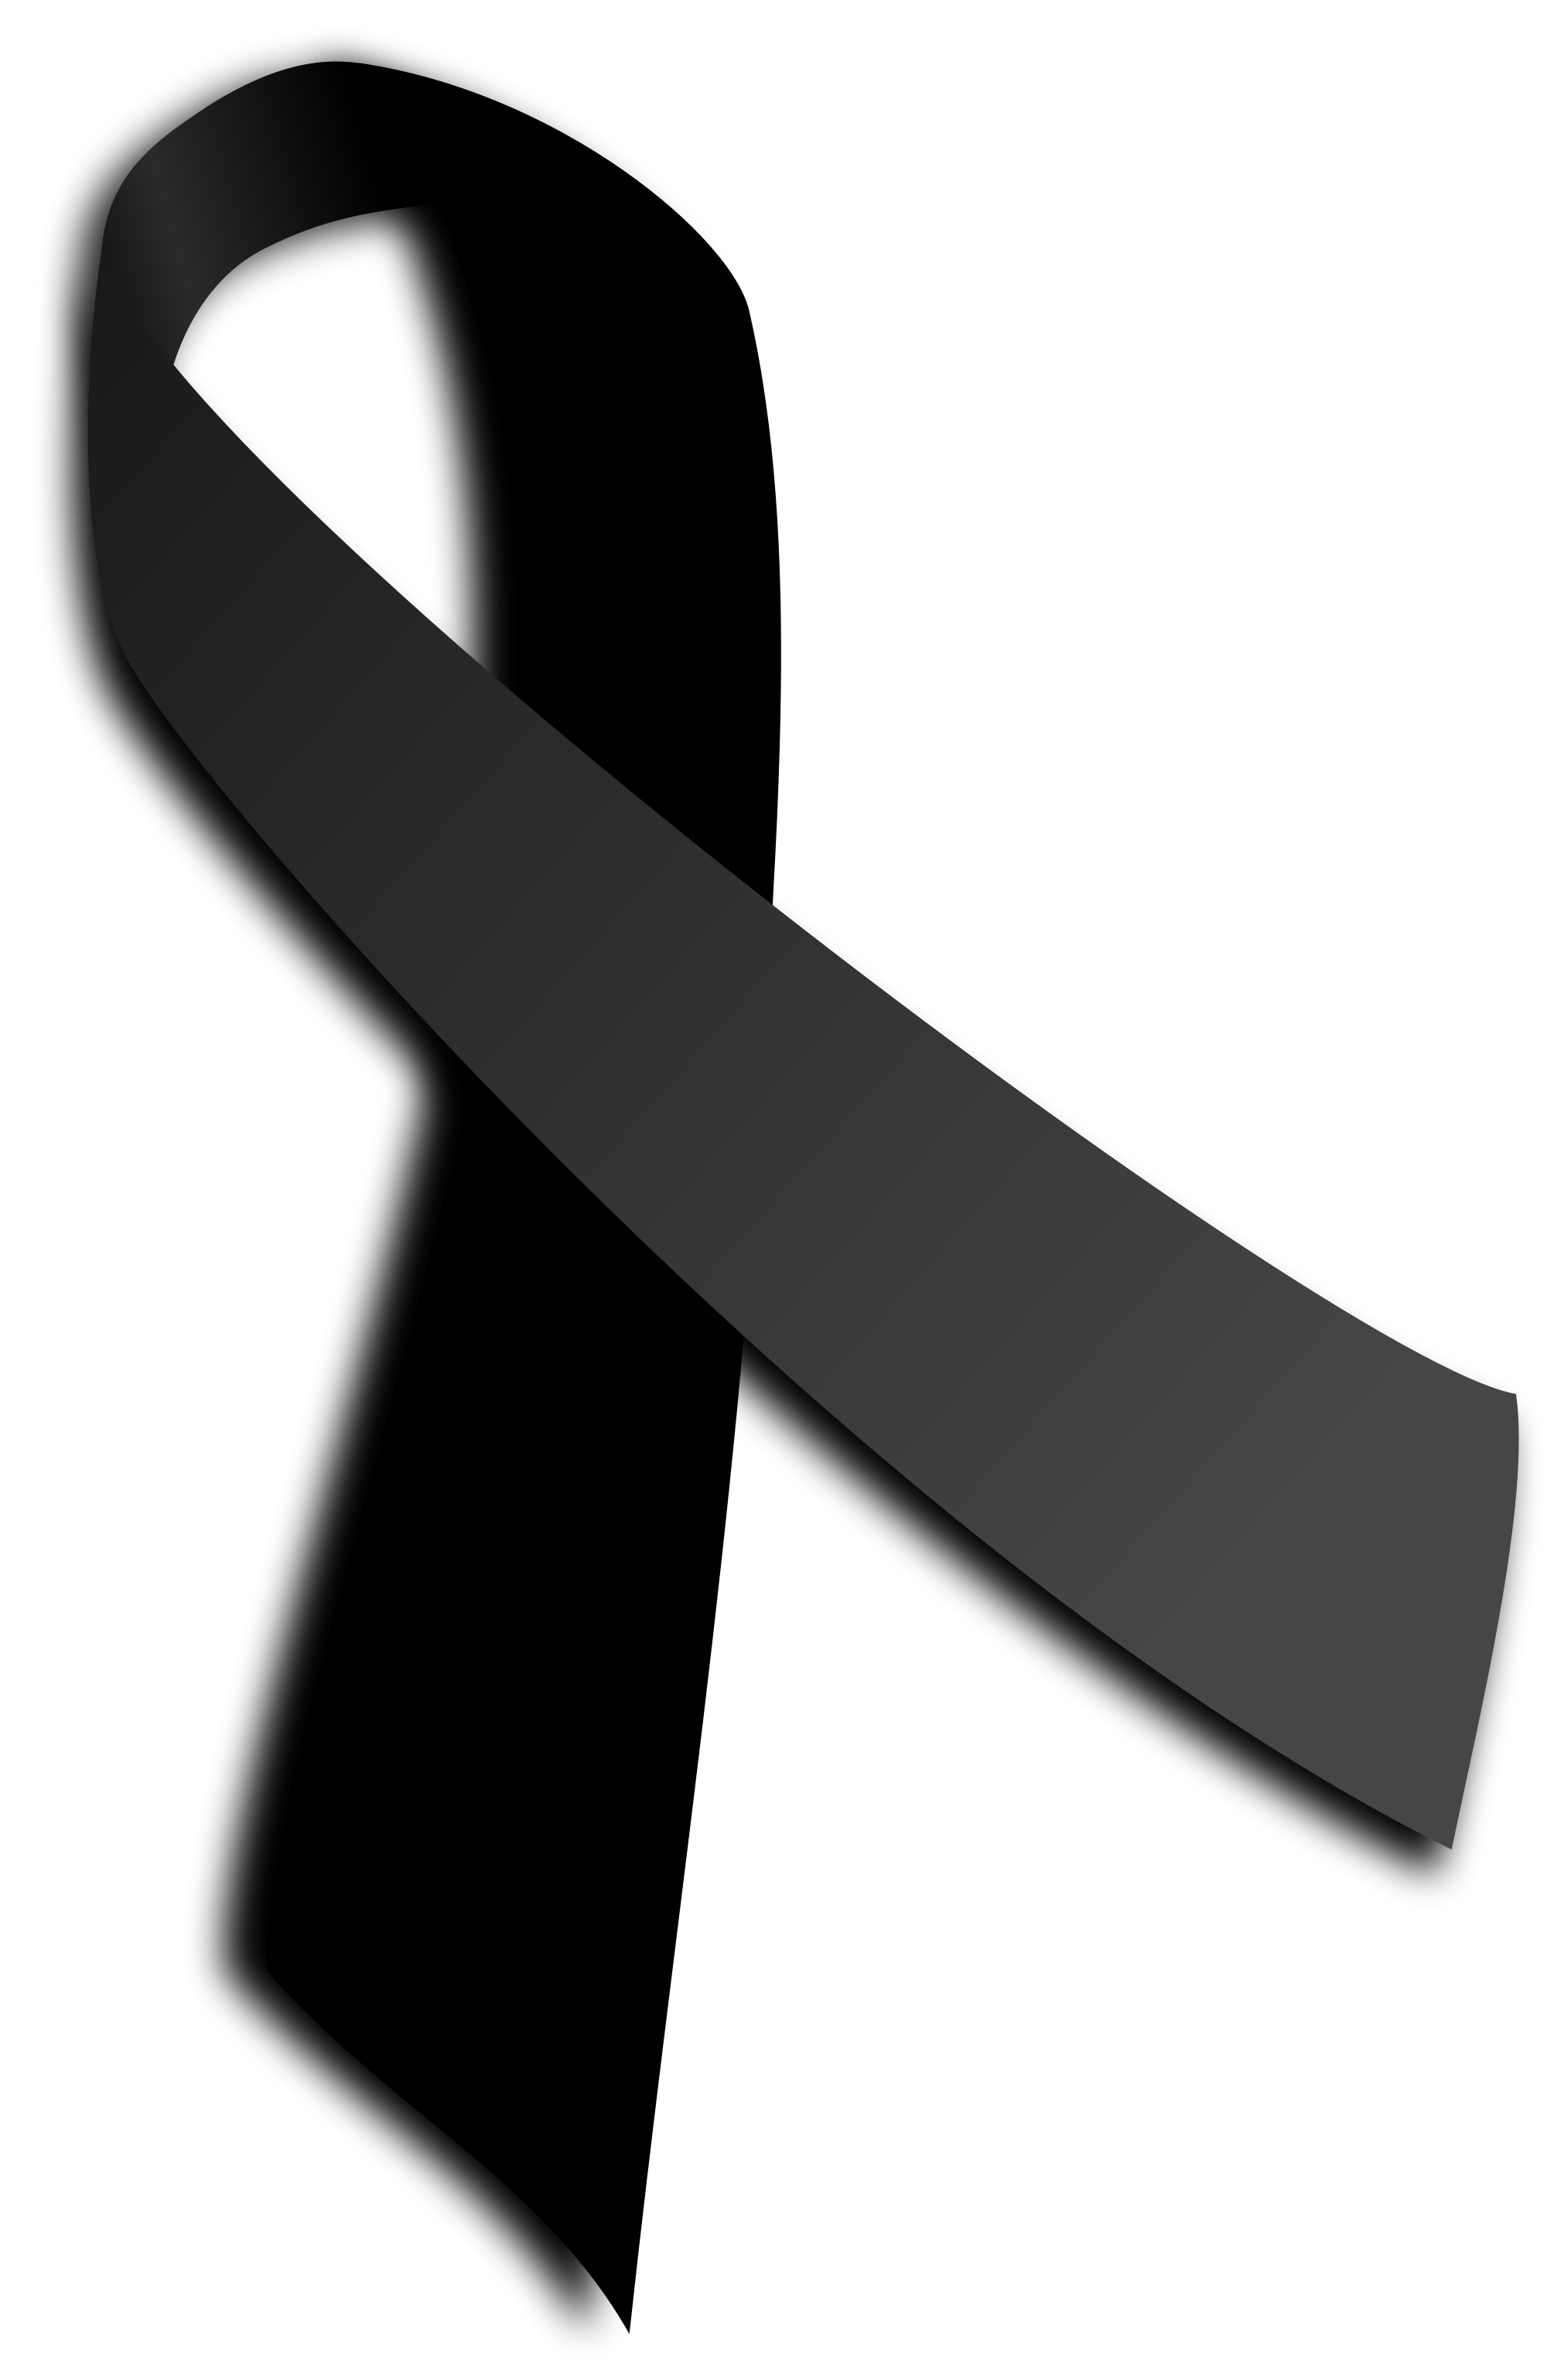 File:Black Ribbon.svg - Wikimedia Commons